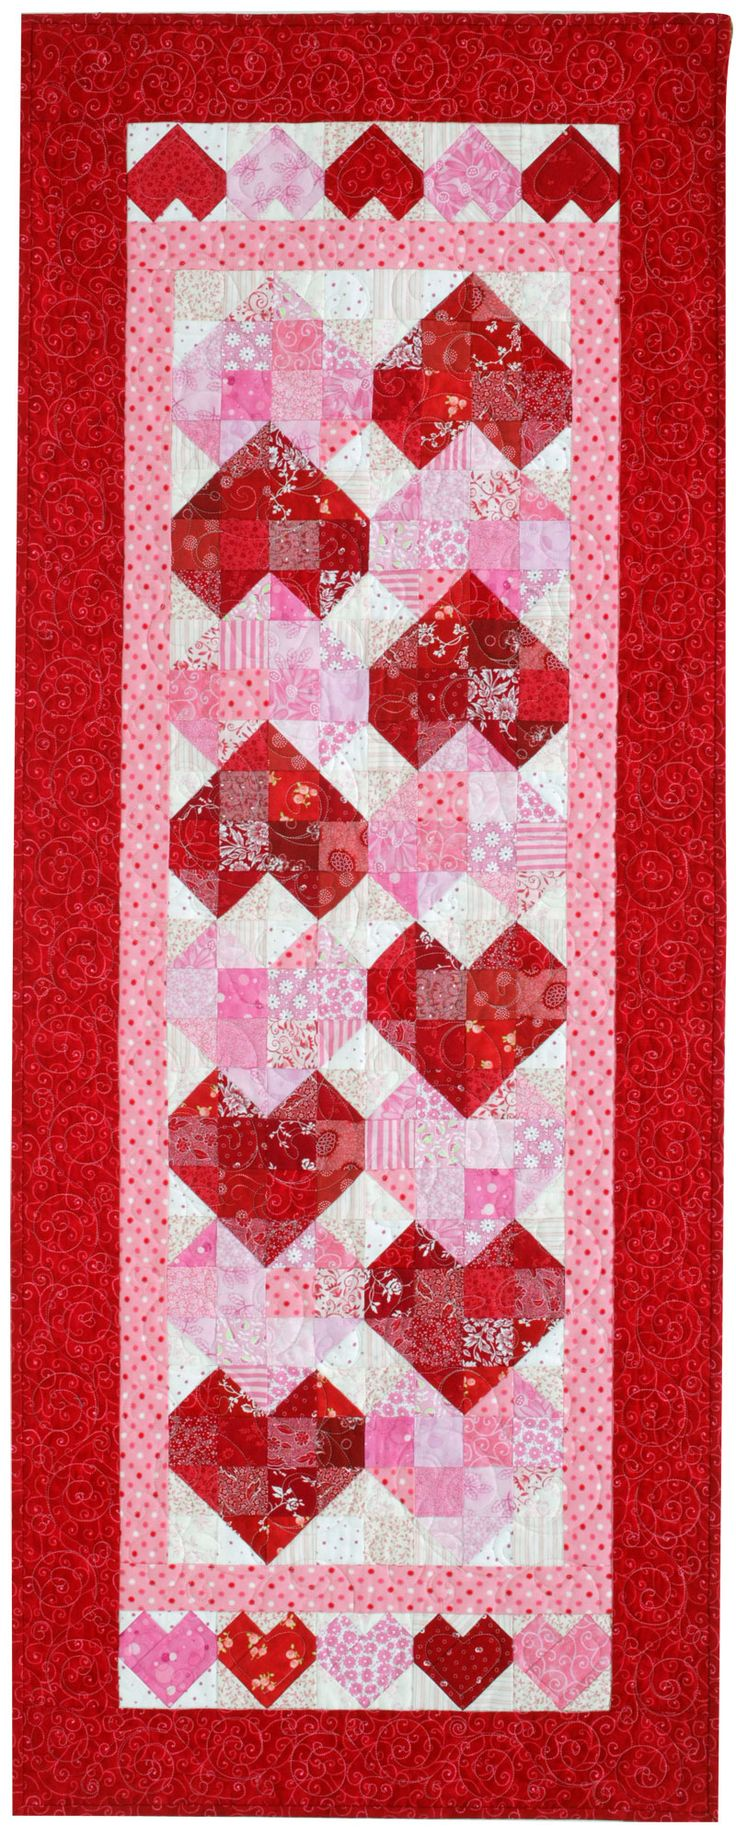 Pin By Judy Johnson On Valentine Quilts Quilted Table